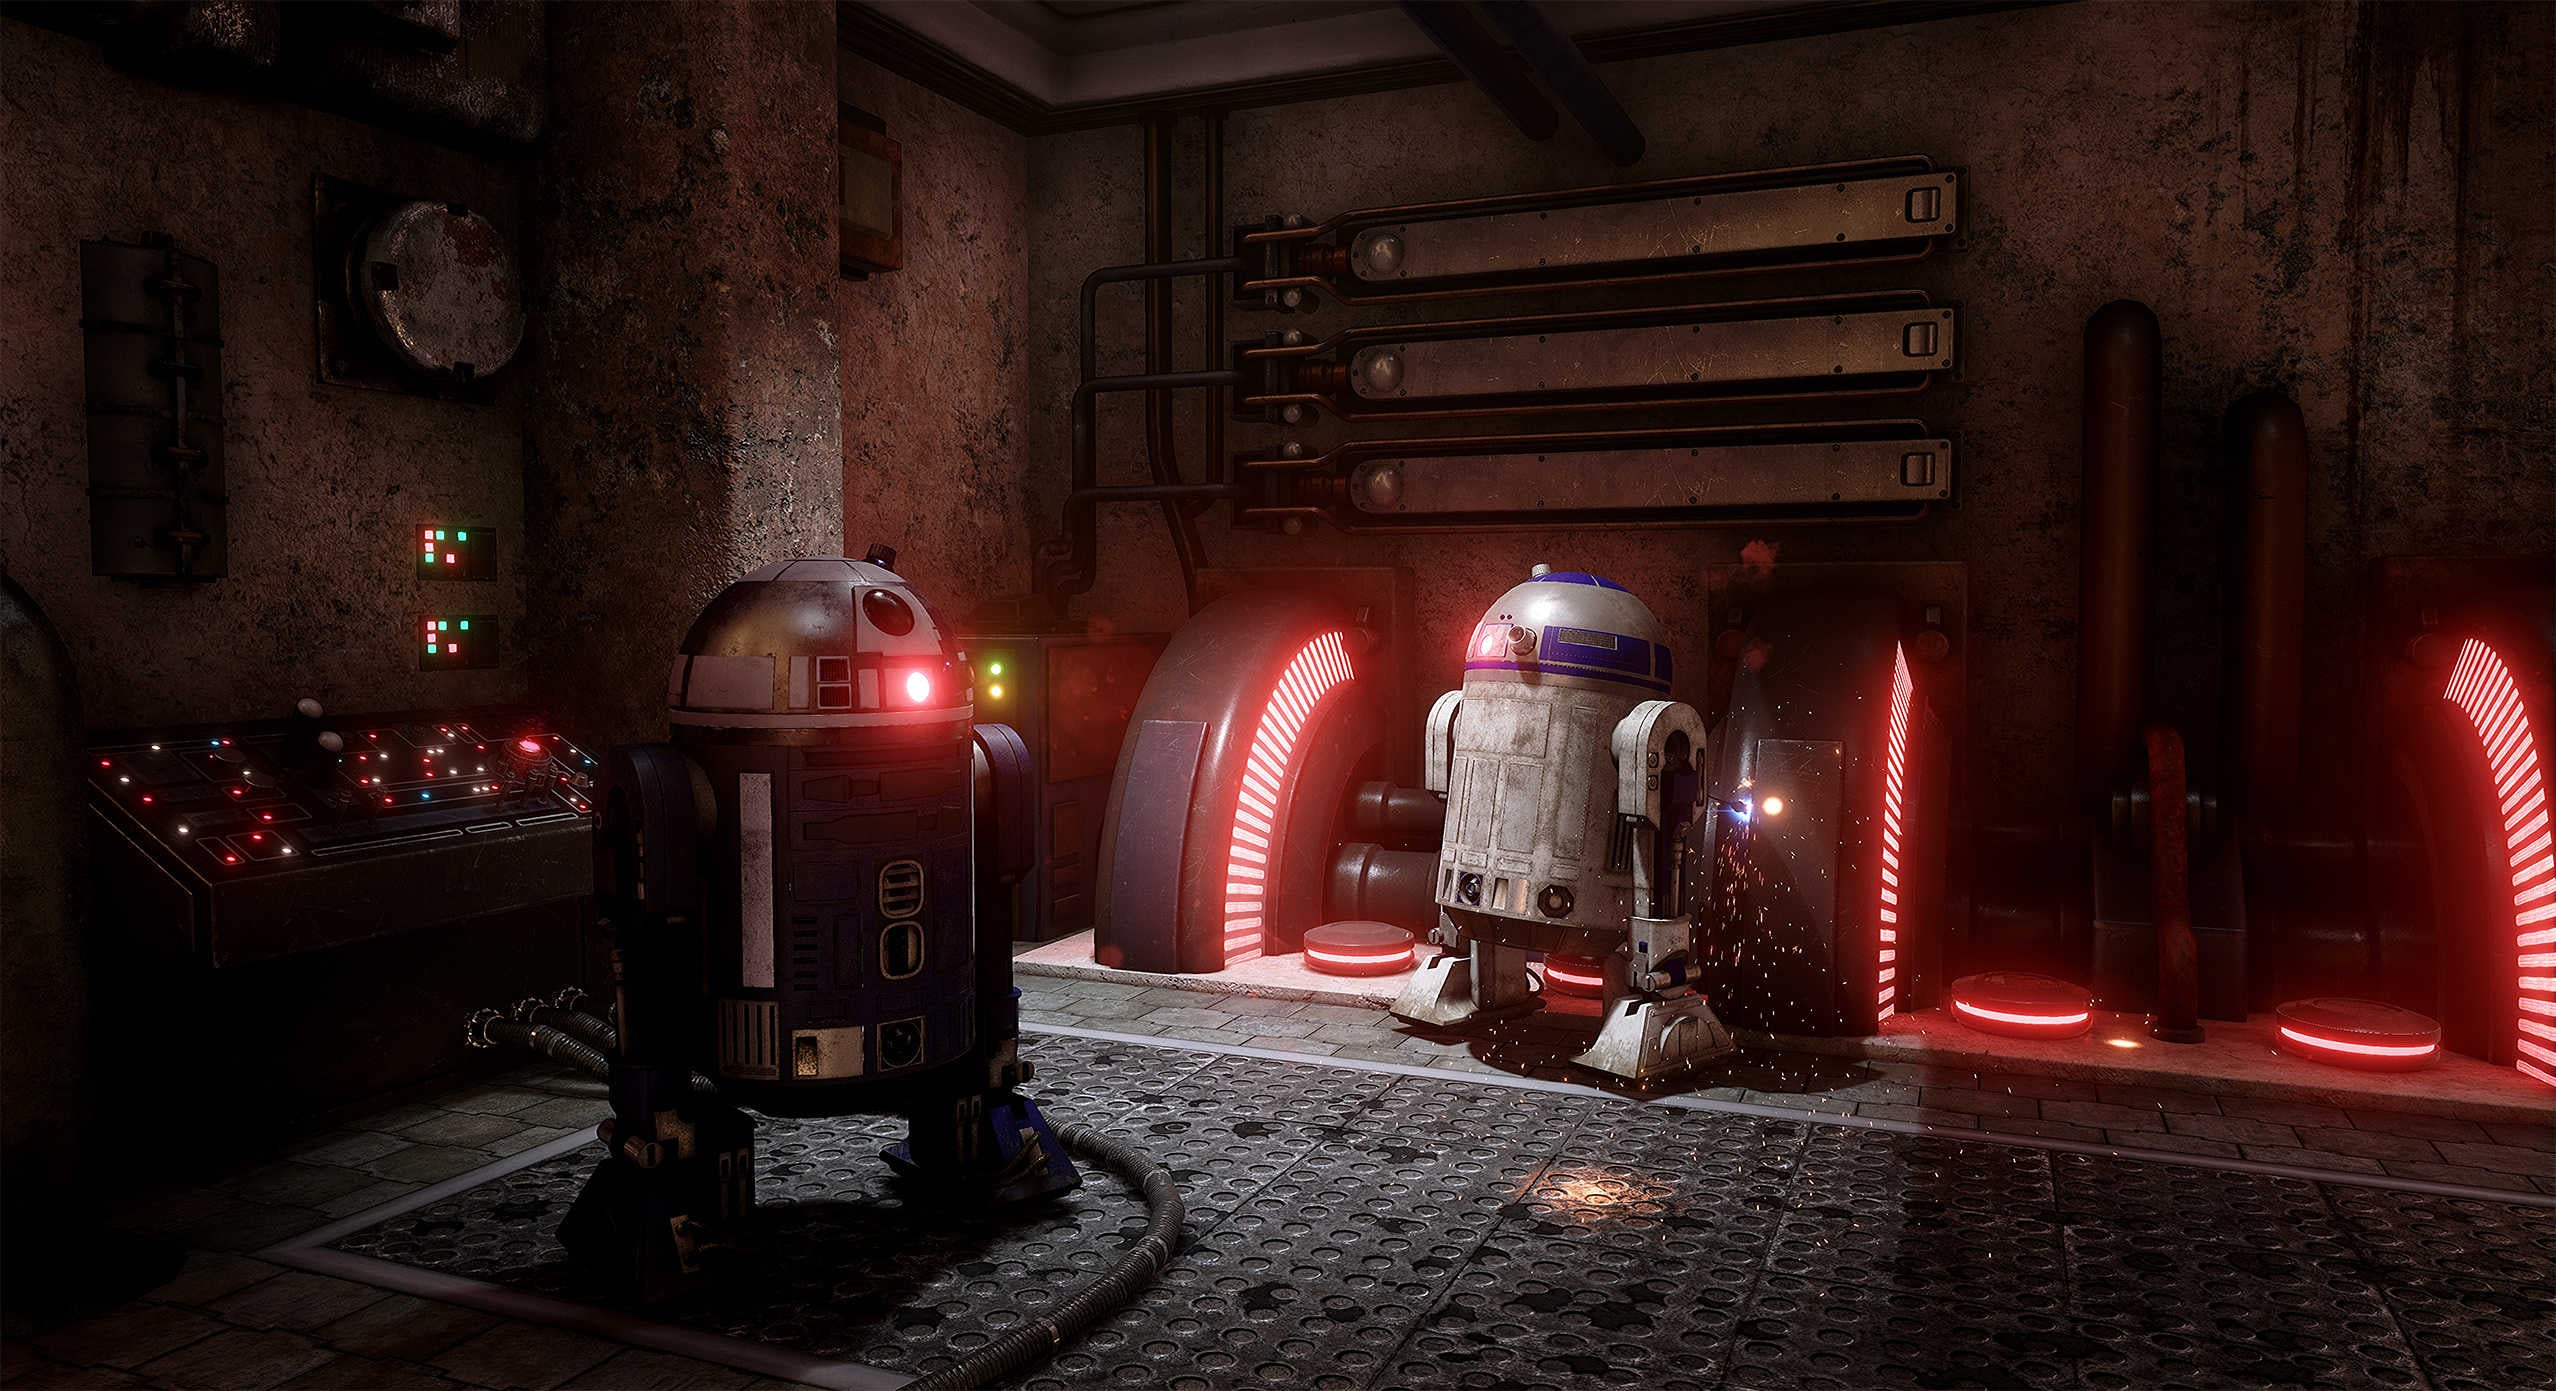 The Unreal Engine 4 Recreation of Star Wars Looks Real Good